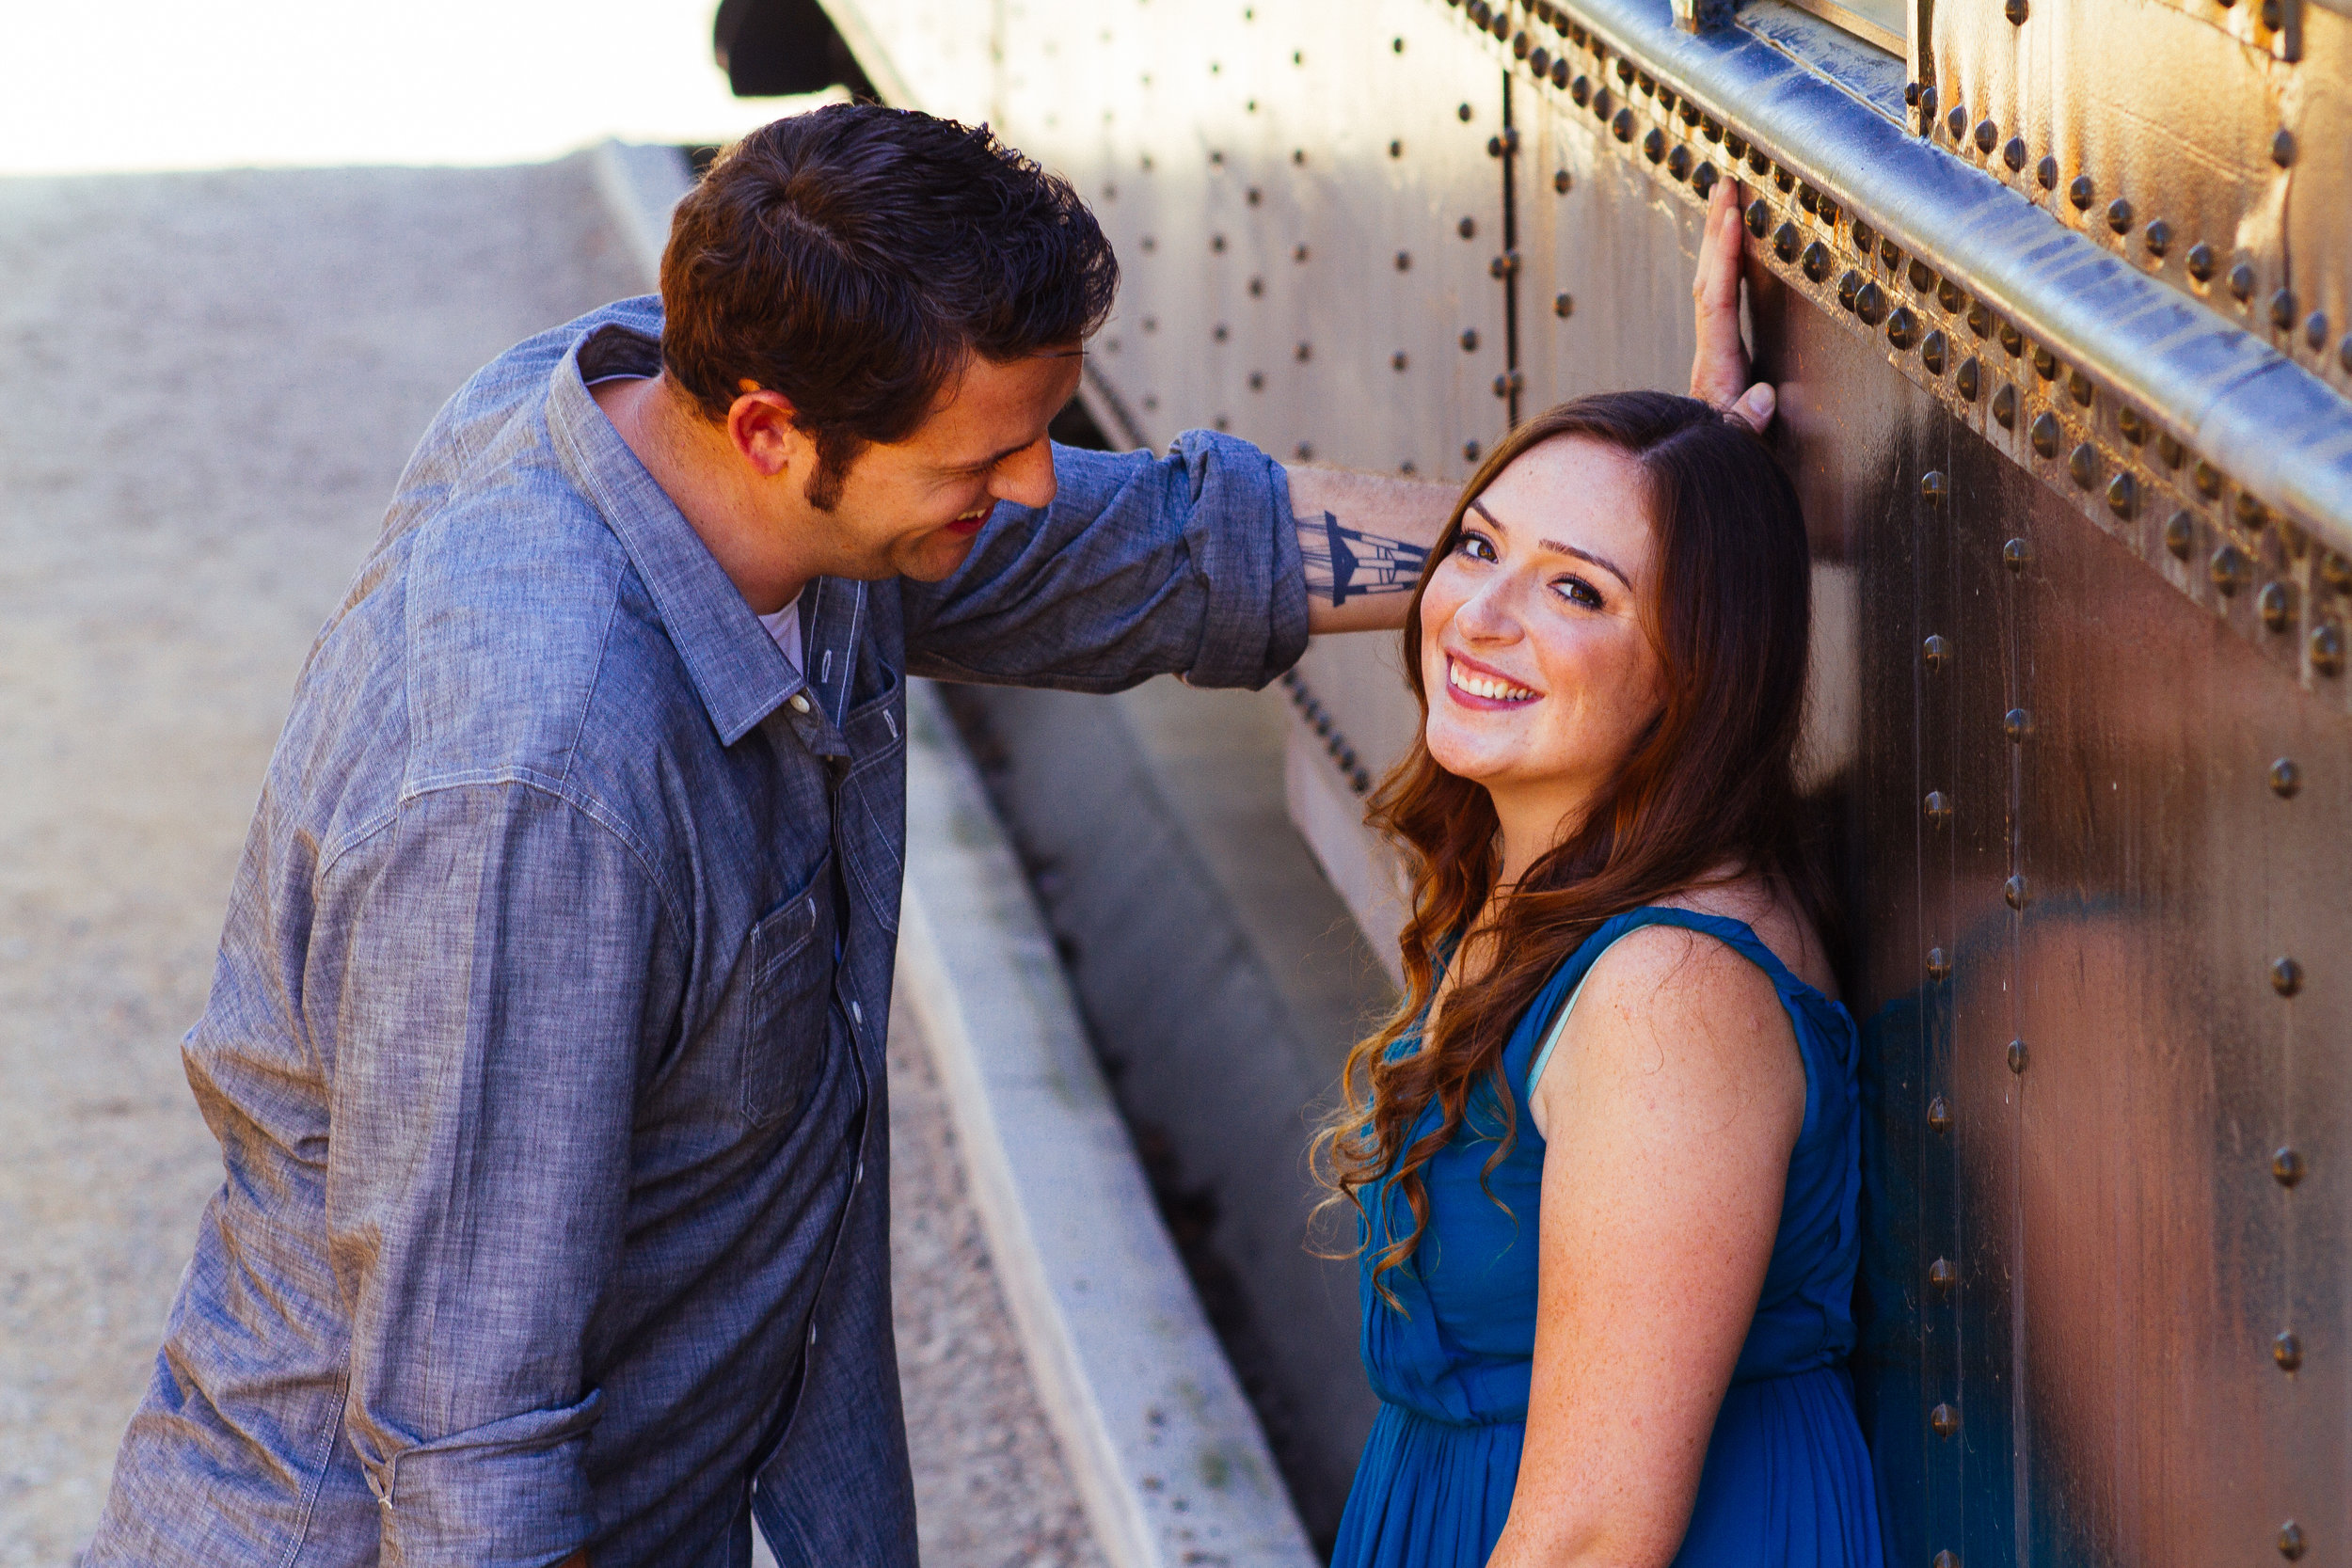 AllisonAndrew_Engagement_CShankel_Edit1-9.jpg